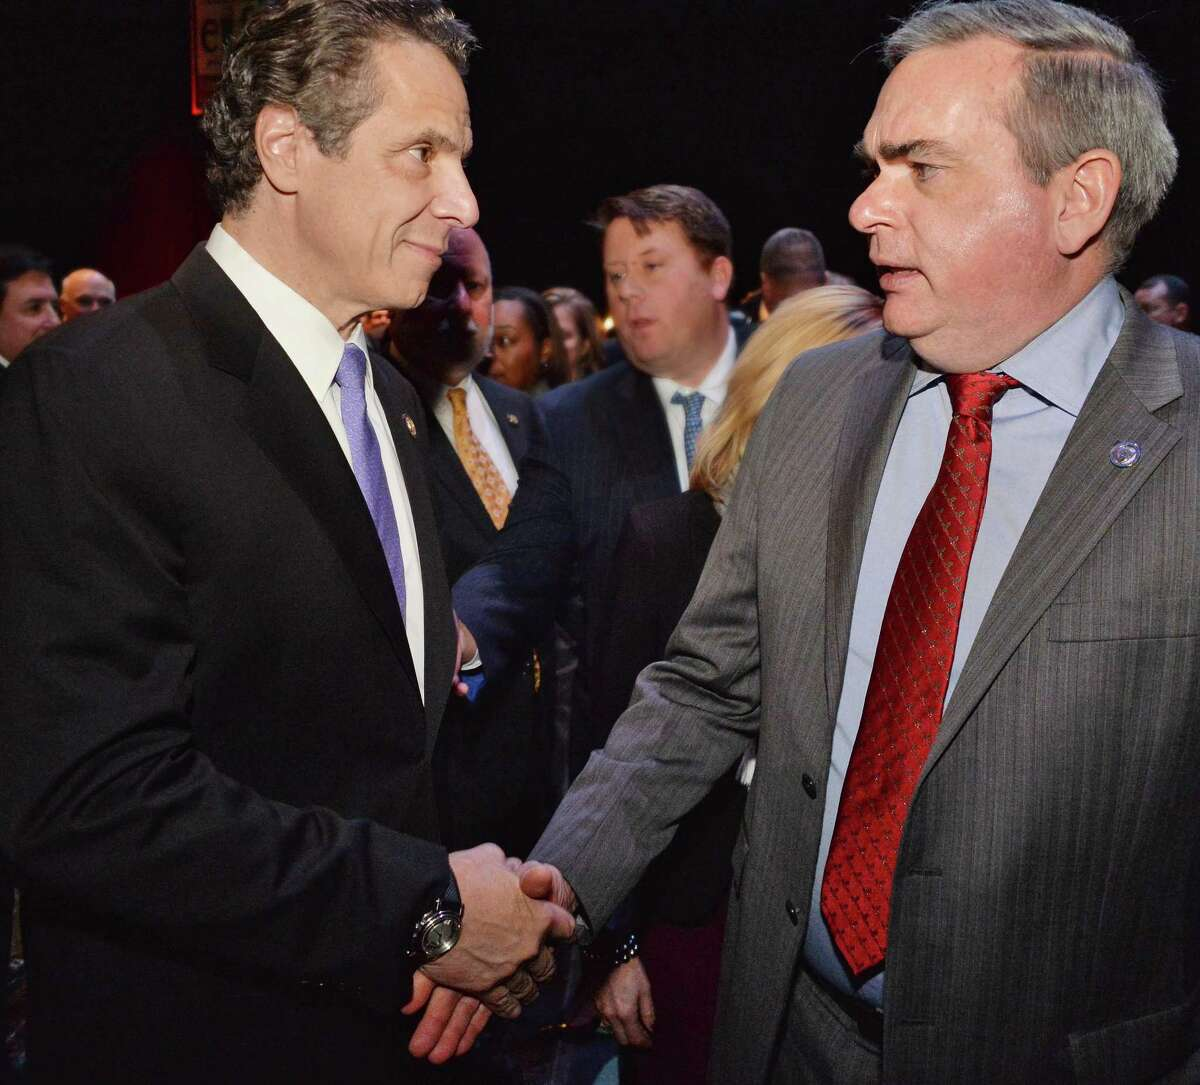 Gov. Andrew Cuomo, left, and Schenectady Mayor Gary McCarthy shake hands during a celebration of the selection of Schenectady as the Capital Region site for the Rivers Casino at Mohawk Harbor on Thursday, Dec. 18, 2014, in the GE Theatre at Proctors in Schenectady, N.Y. (John Carl D'Annibale / Times Union)